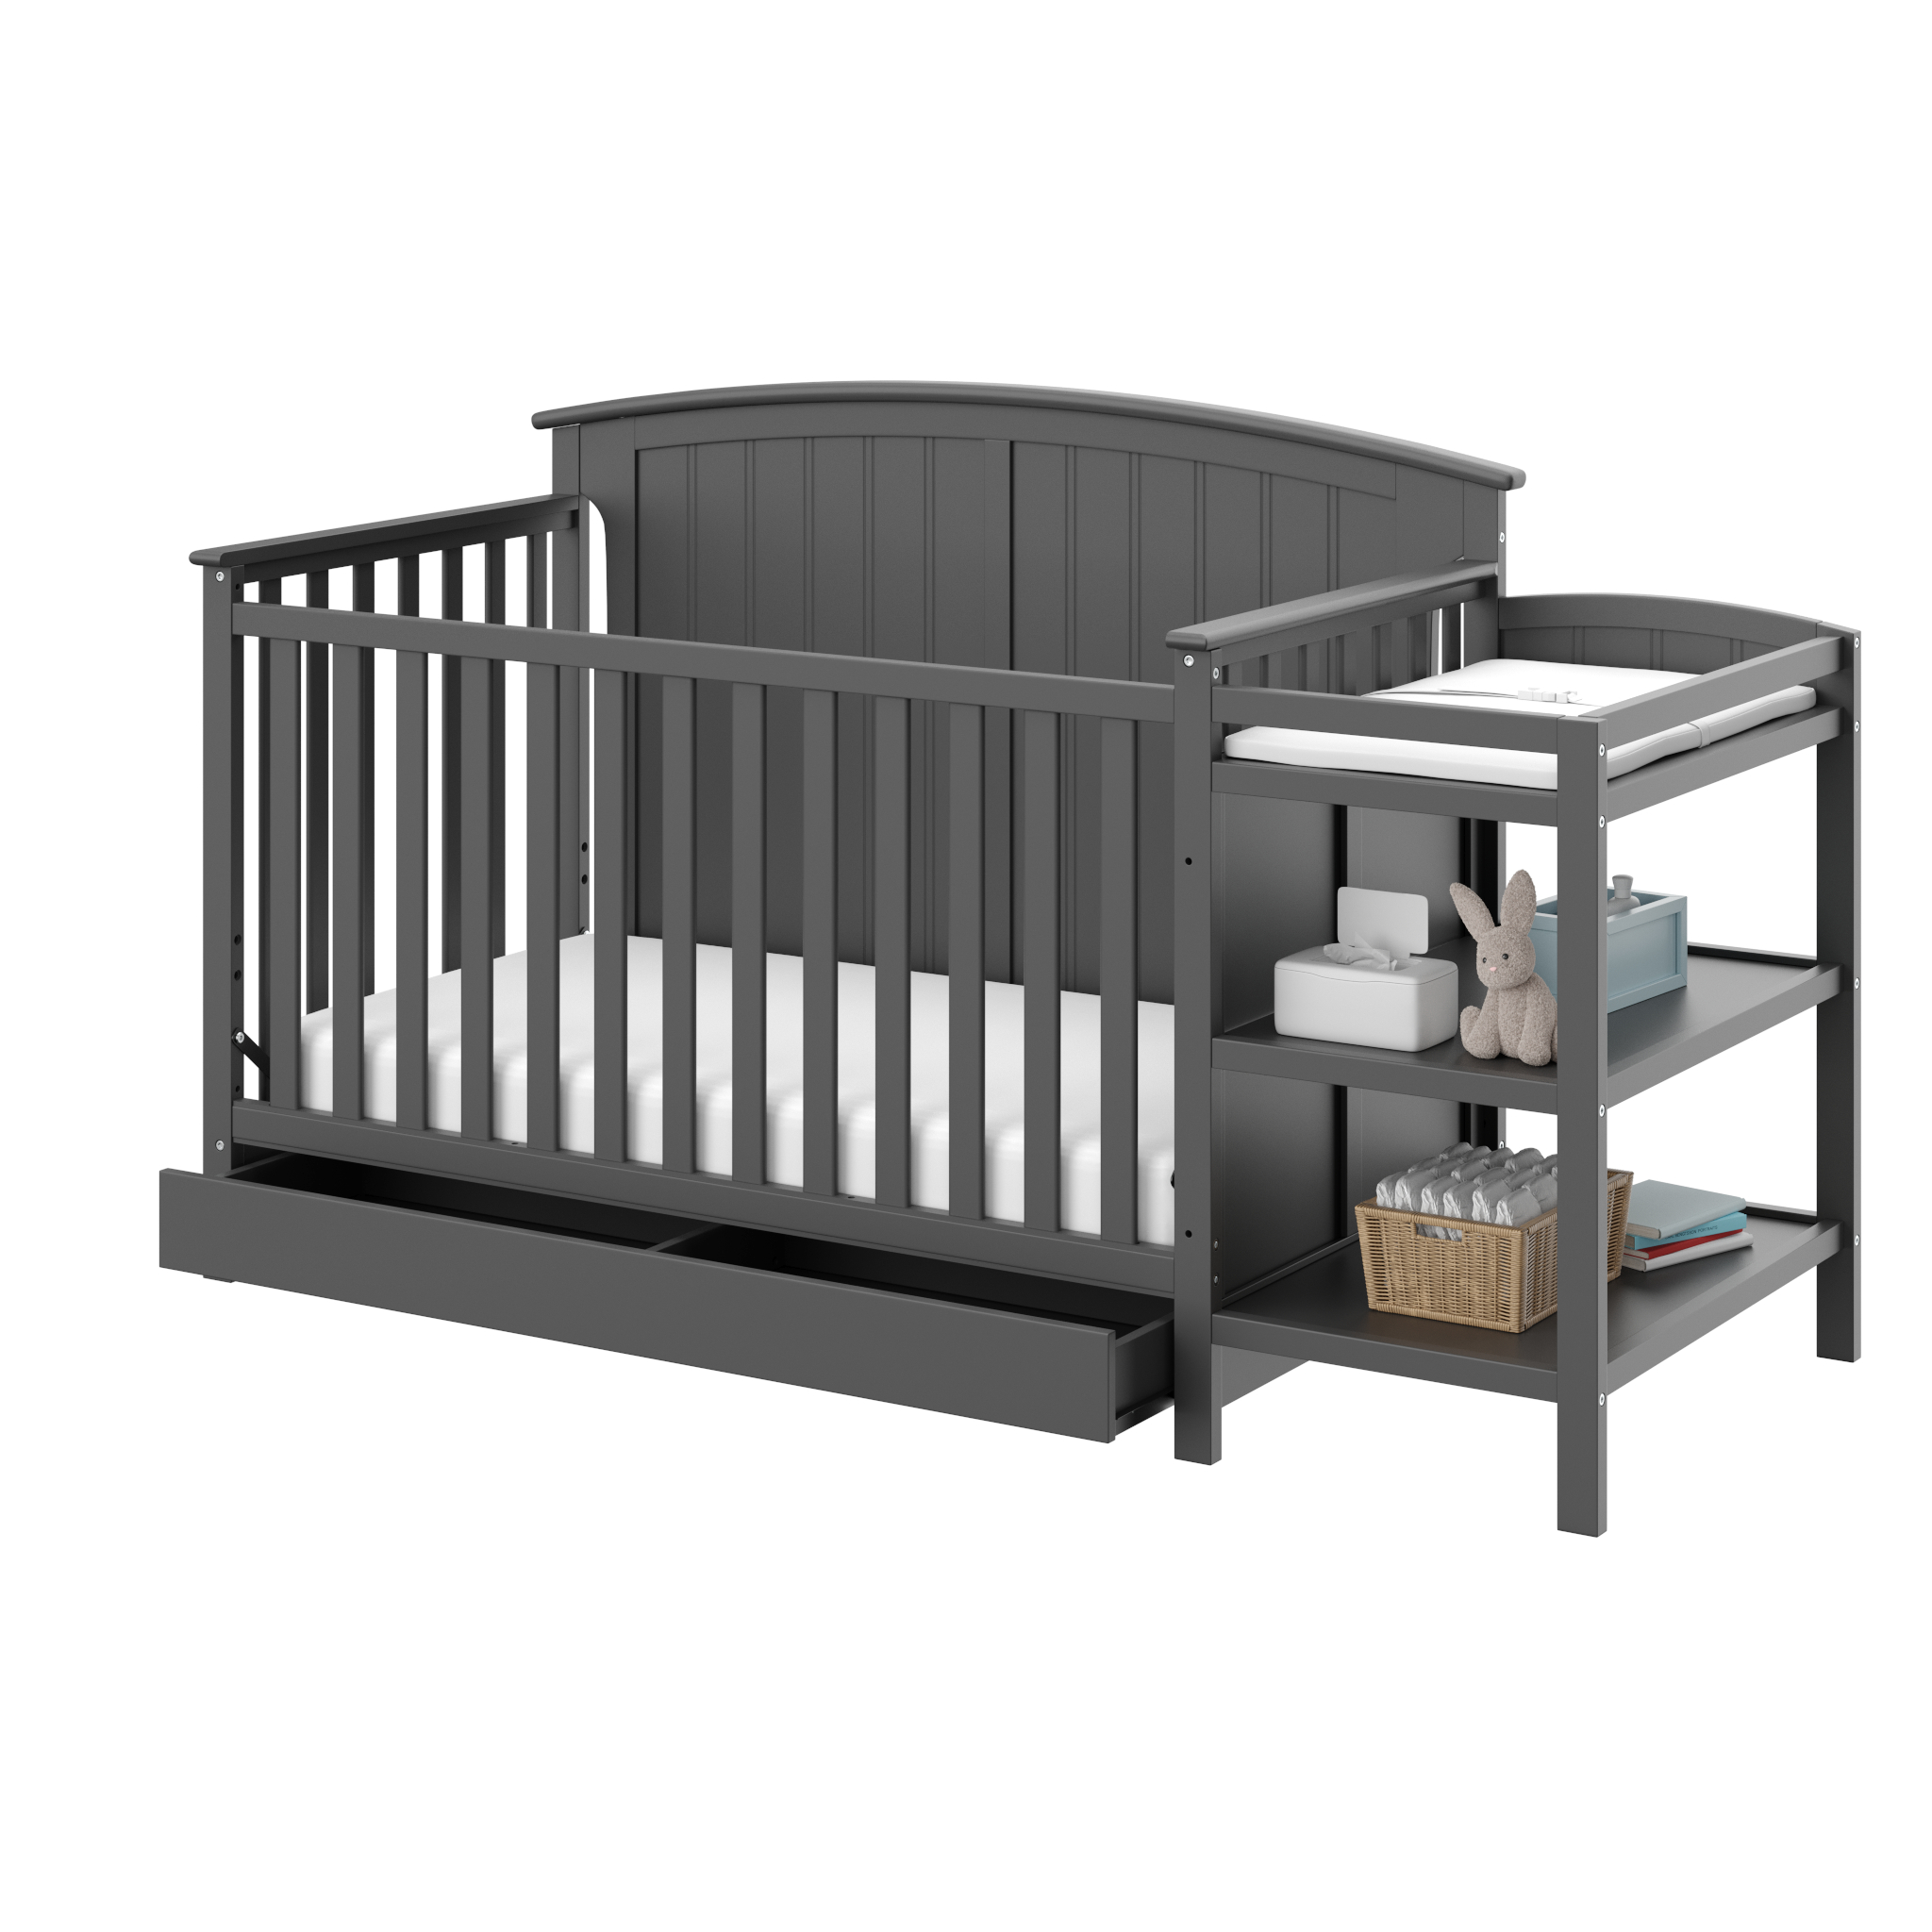 Storkcraft Steveston 4 in 1 Crib and Changer with Drawer Gray